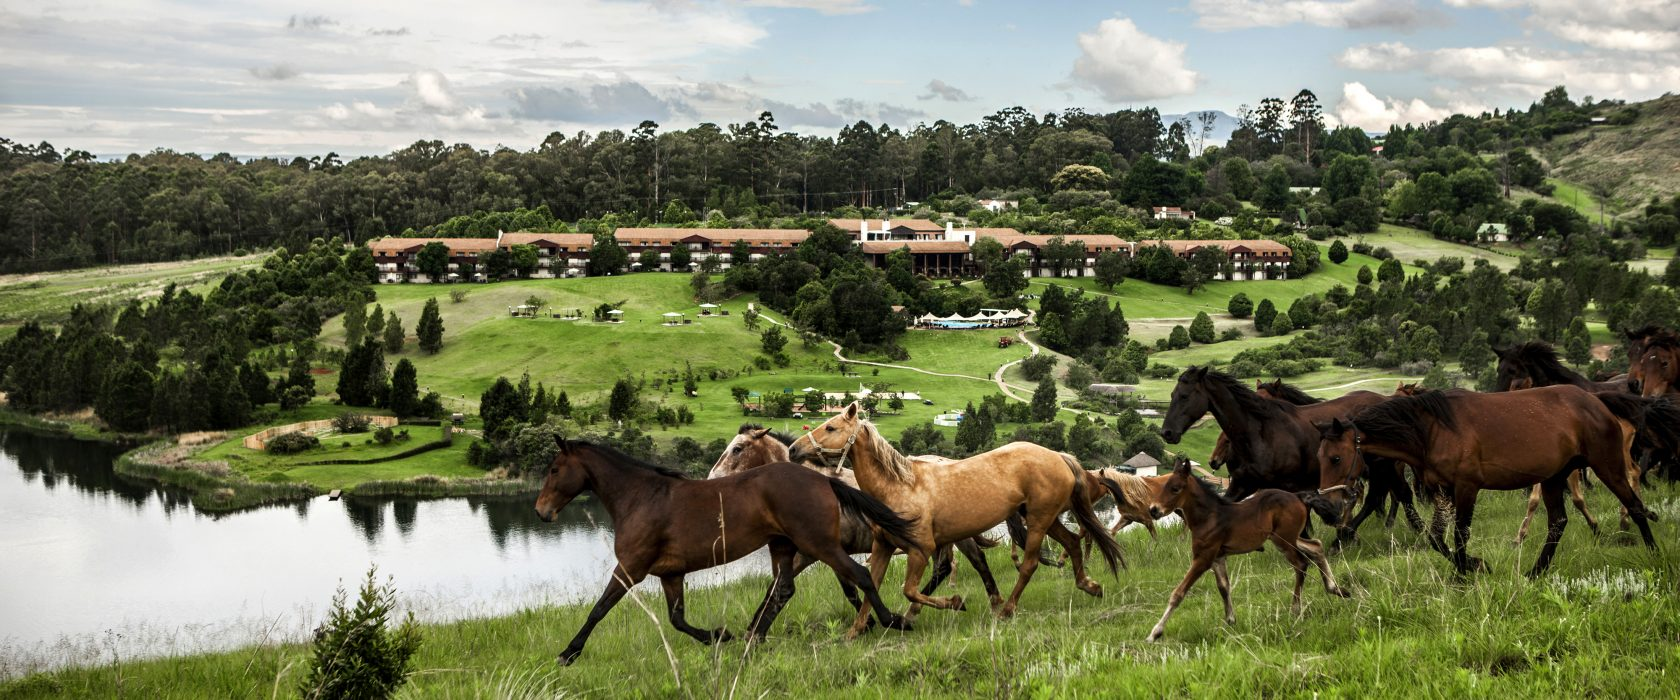 Horses running in a field in front of the hotel